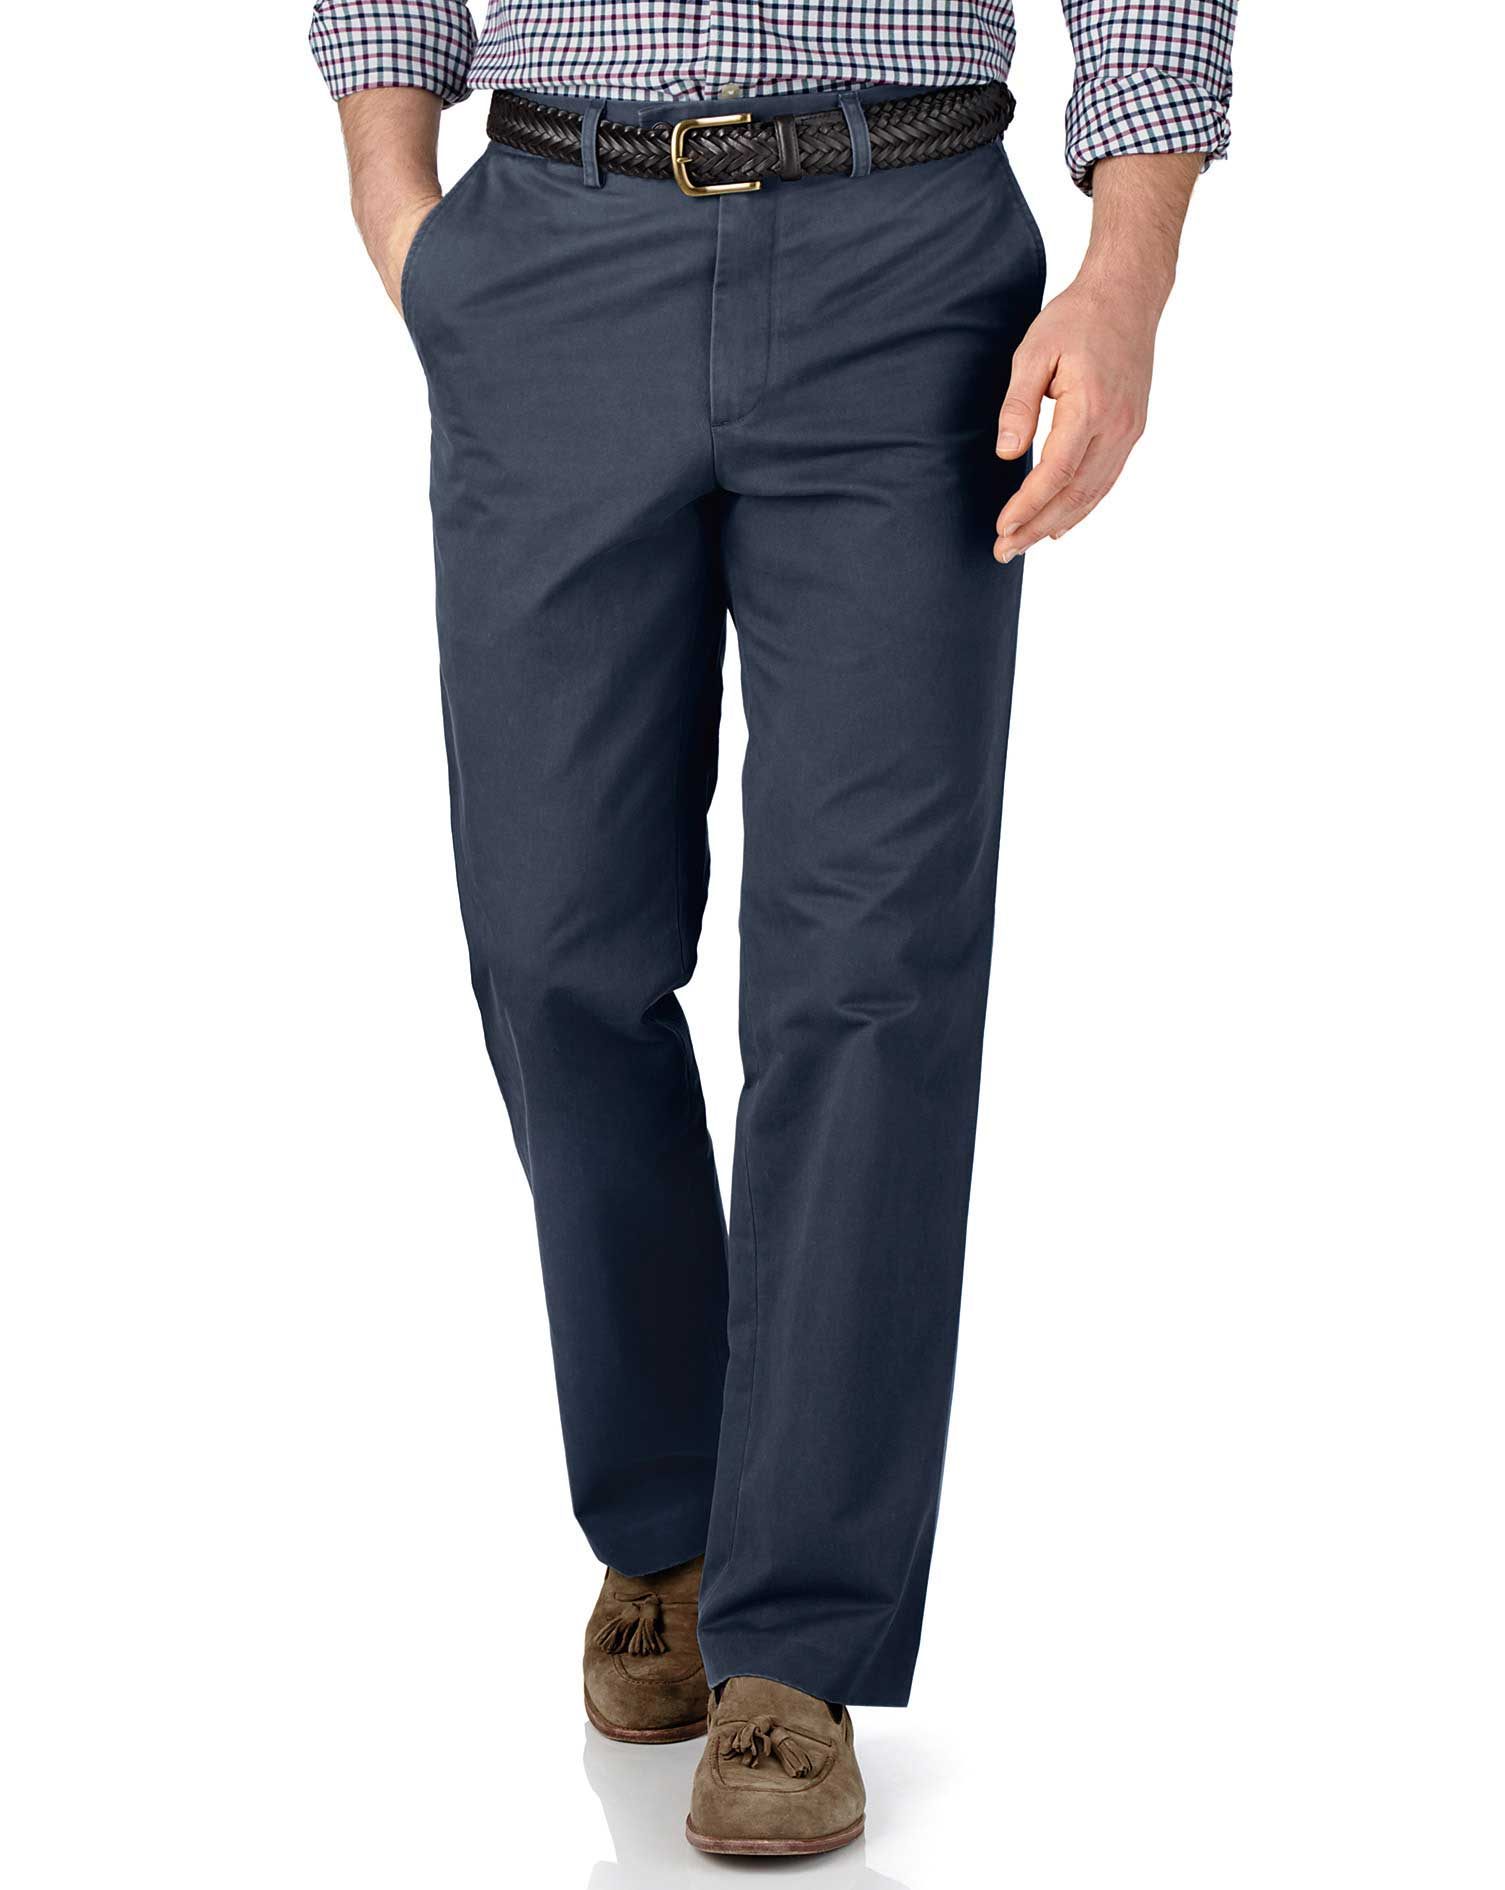 Airforce Blue Classic Fit Flat Front Cotton Chino Trousers Size W38 L38 by Charles Tyrwhitt